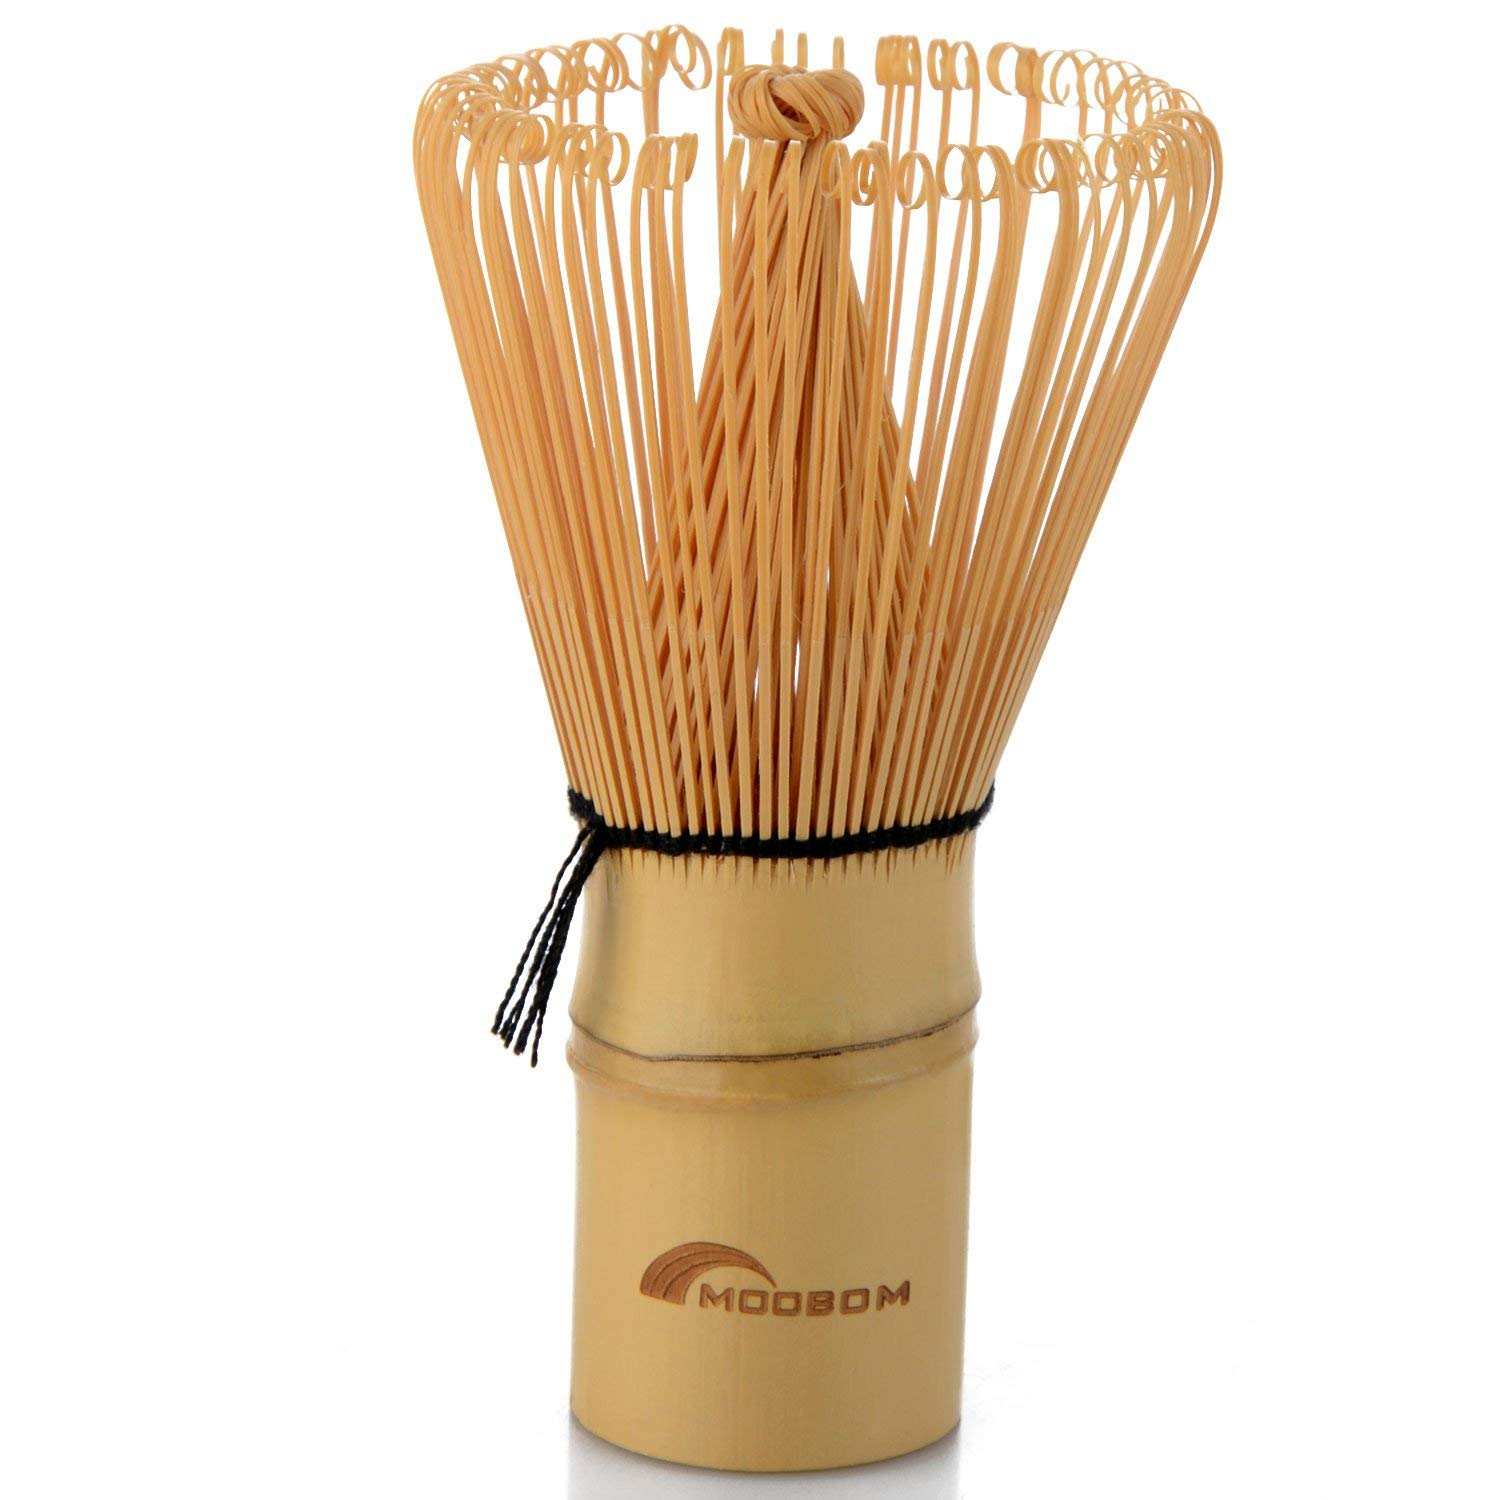 seguryy 1pc 110mm x 58mm Bamboo Tea Sets Matcha Whisk Teaism Accessories Dishware & Serving Pieces